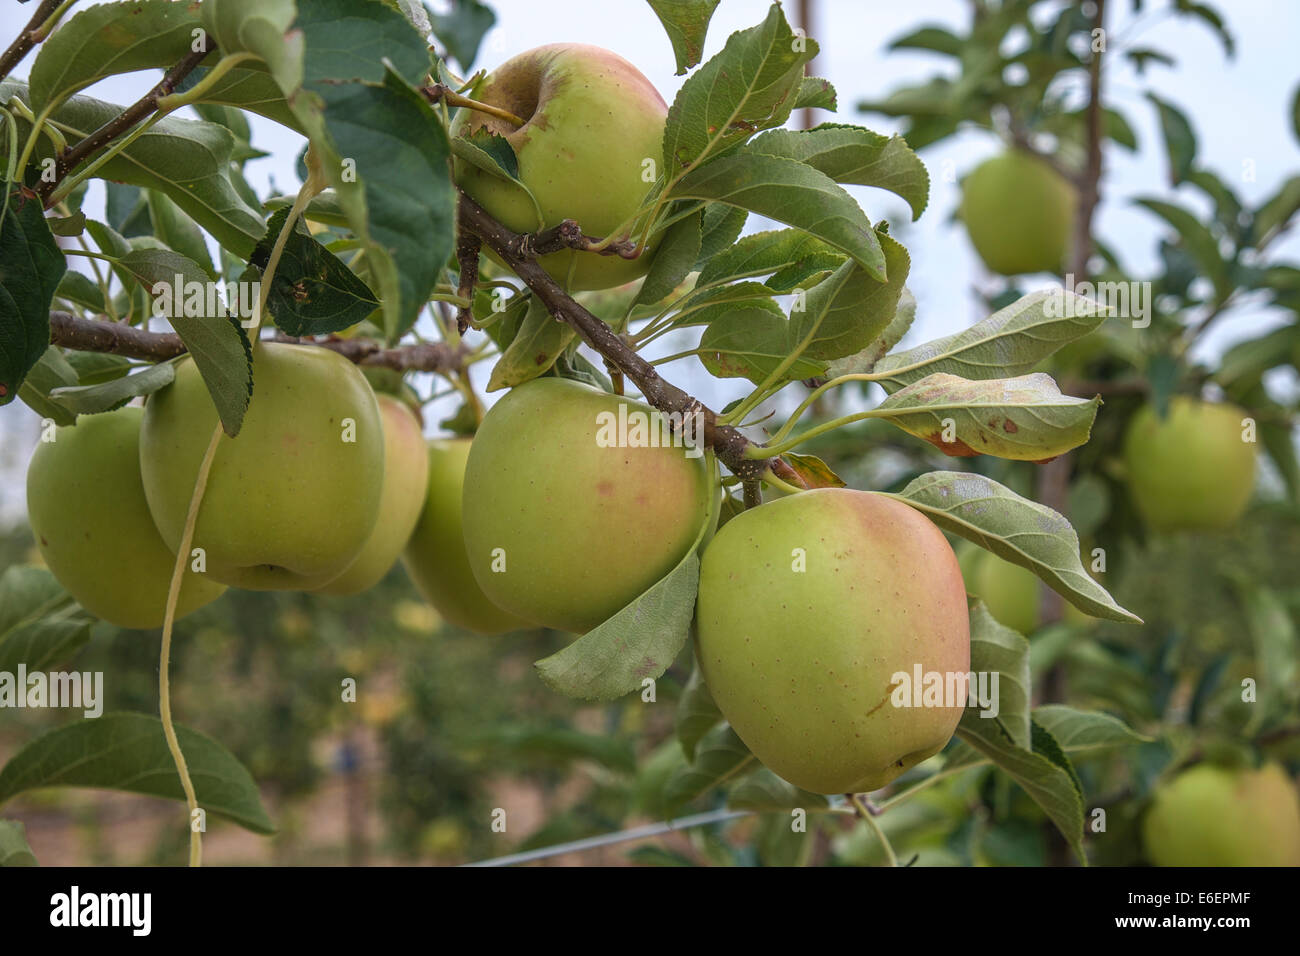 Apples and fruits in Spain don't harvest by Russian Boycott to EU Stock Photo